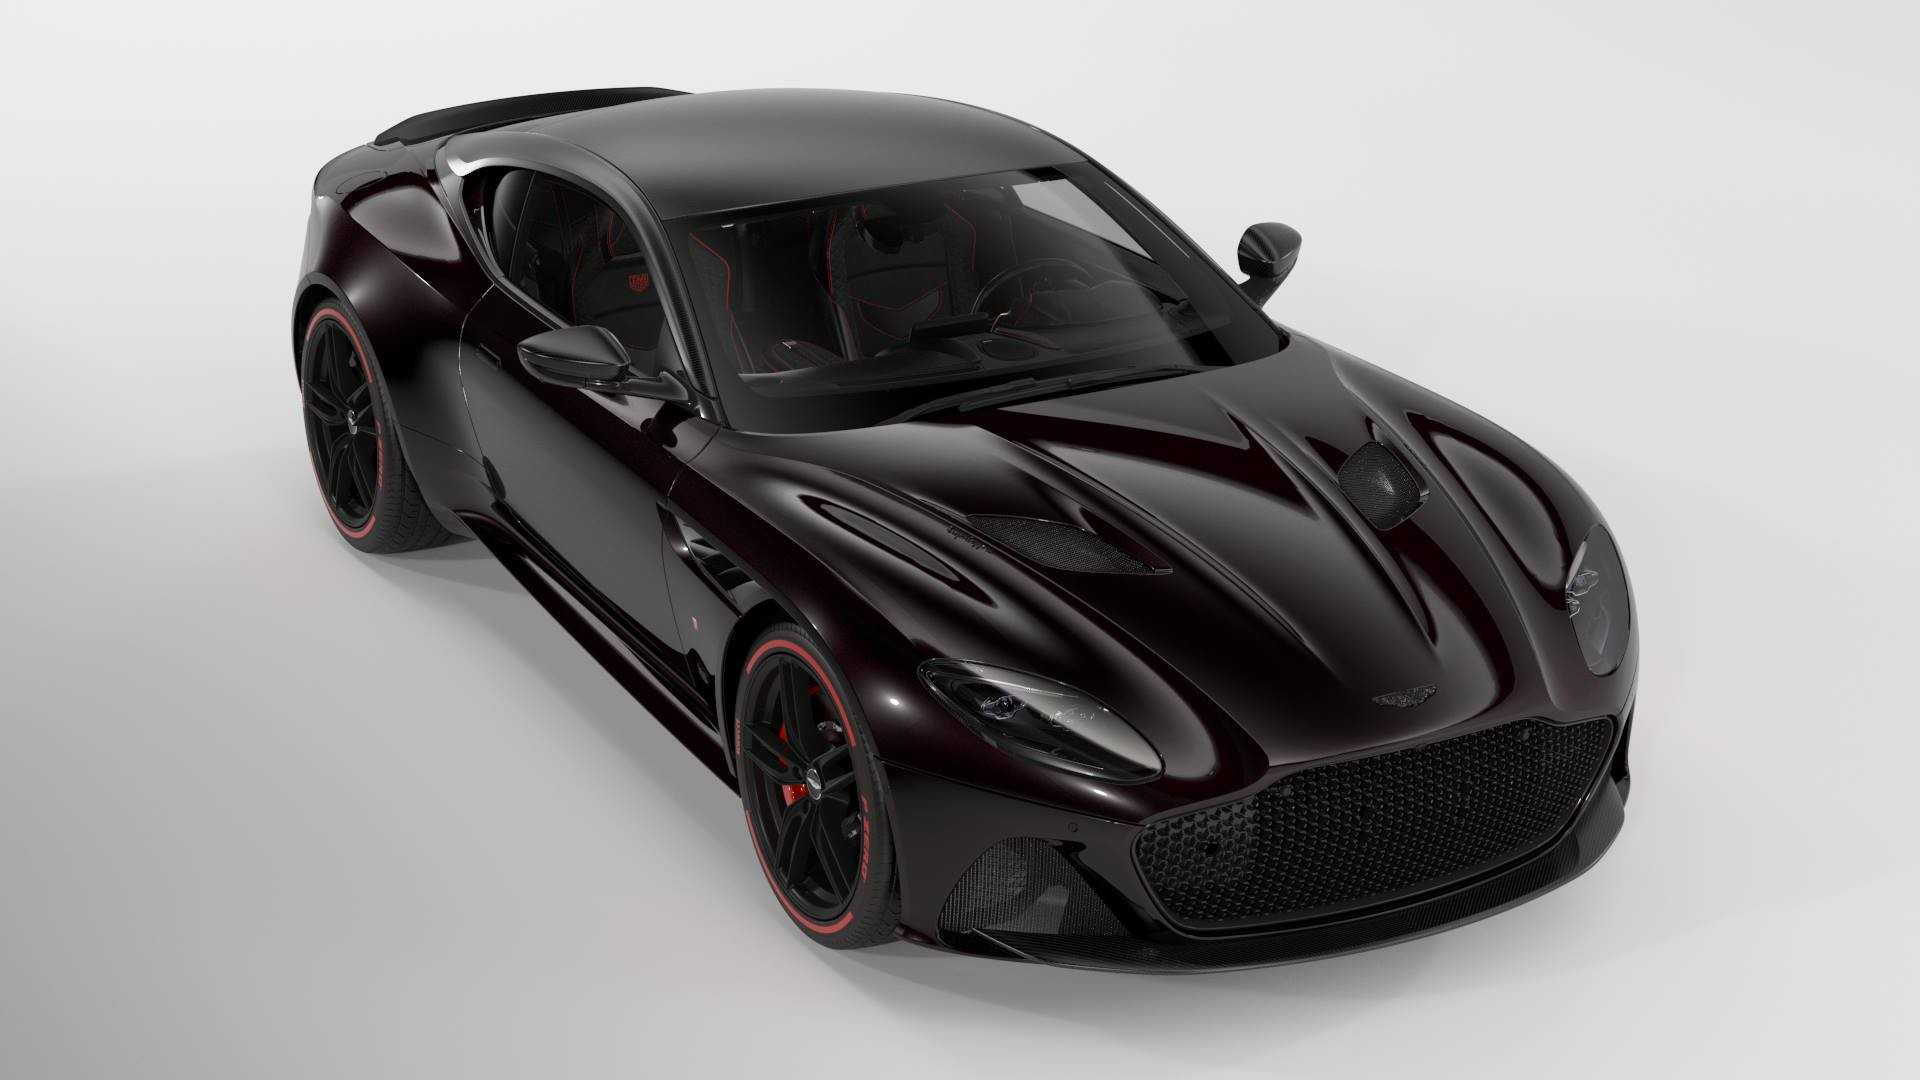 2019 Aston Martin DBS Superleggera Tag Heuer Edition